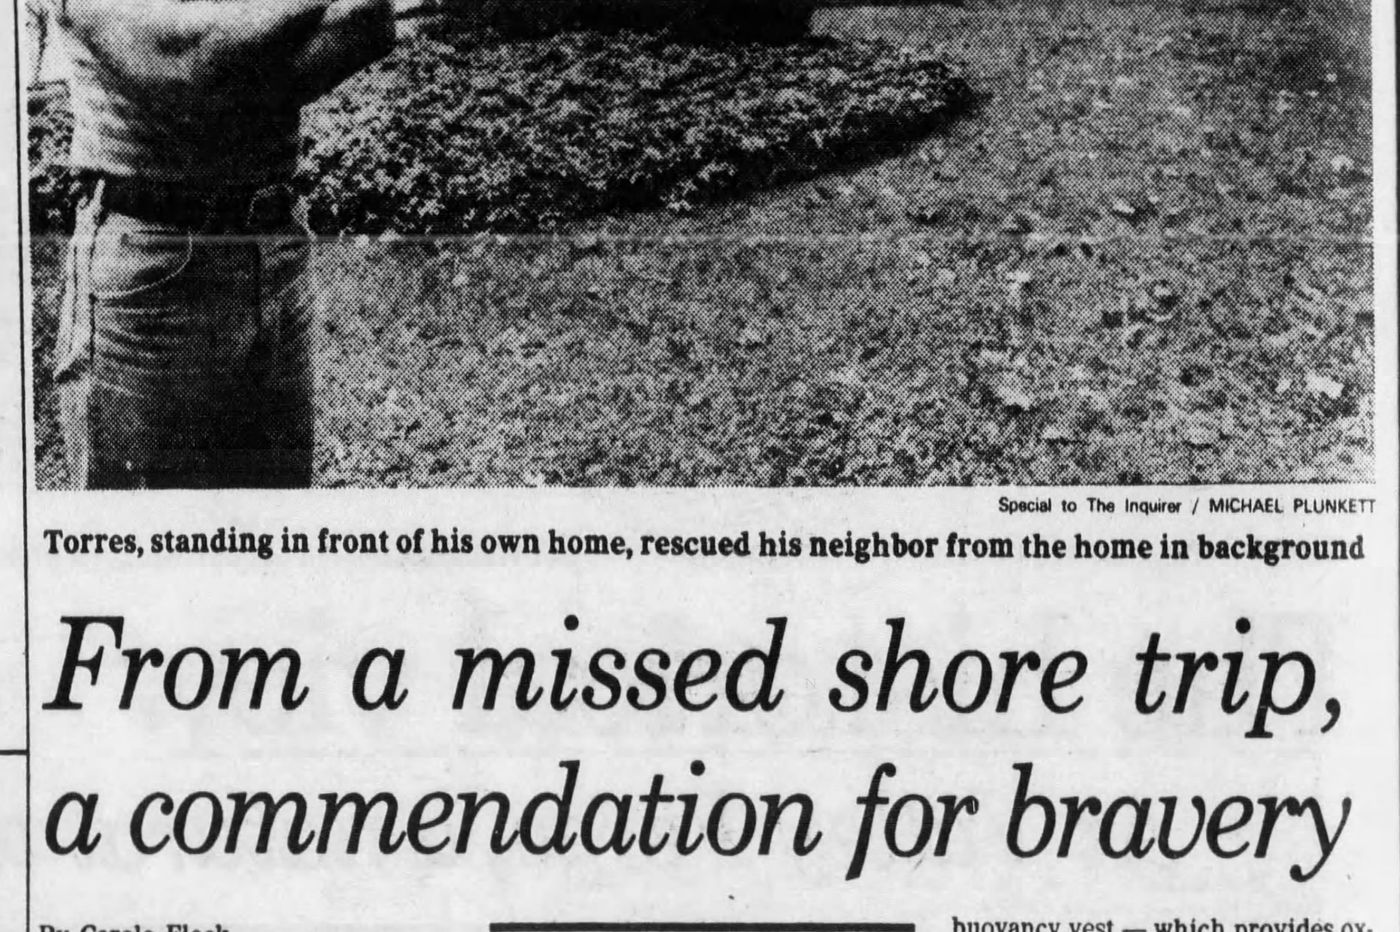 From The Inquirer archives: From a missed Shore trip, a commendation for bravery